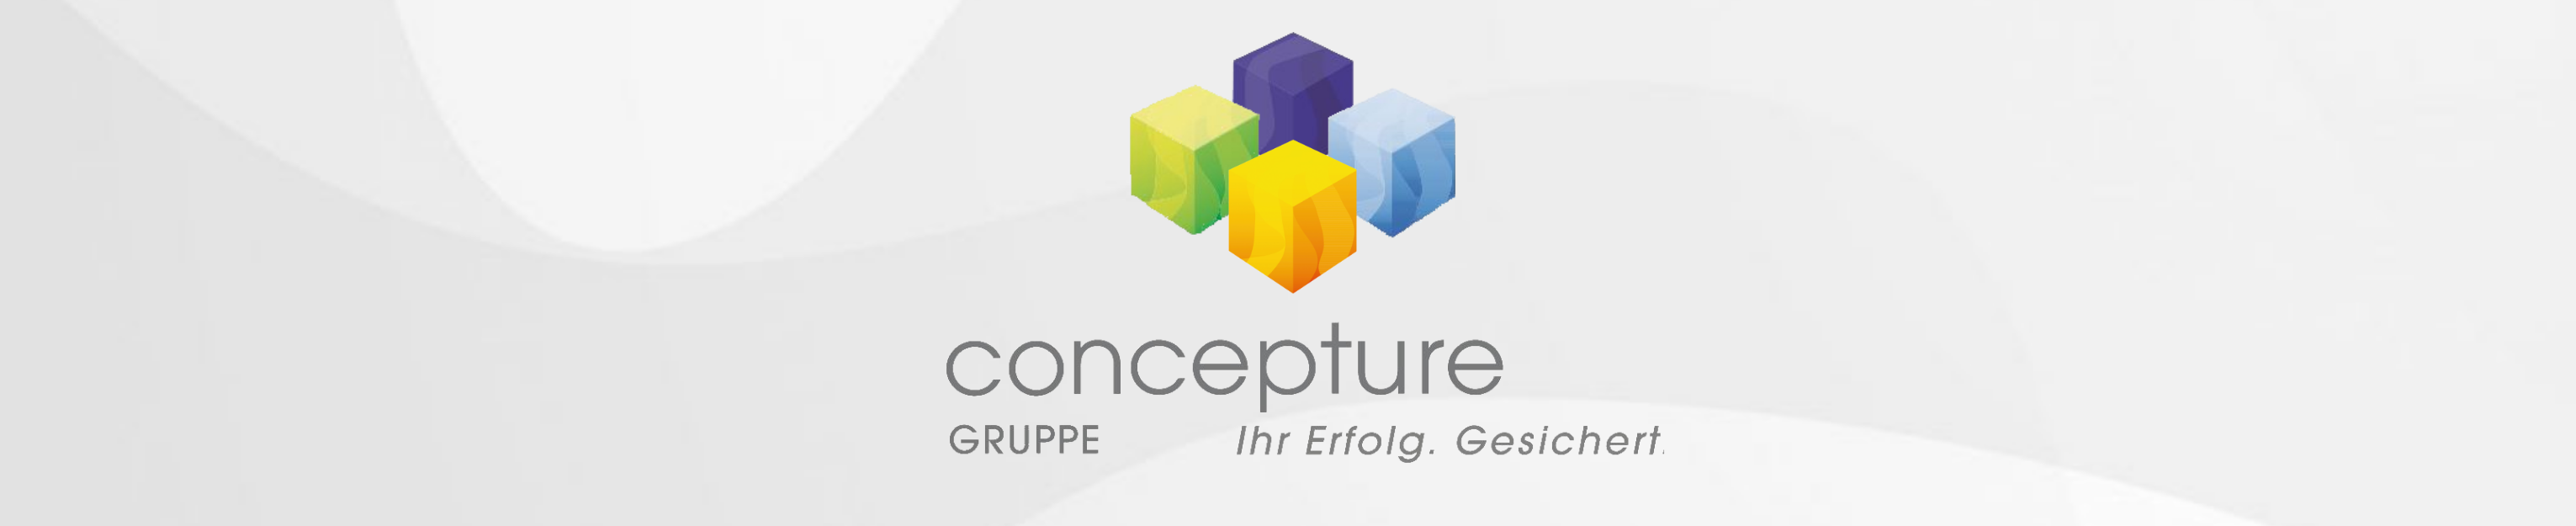 Concepture Gruppe GmbH